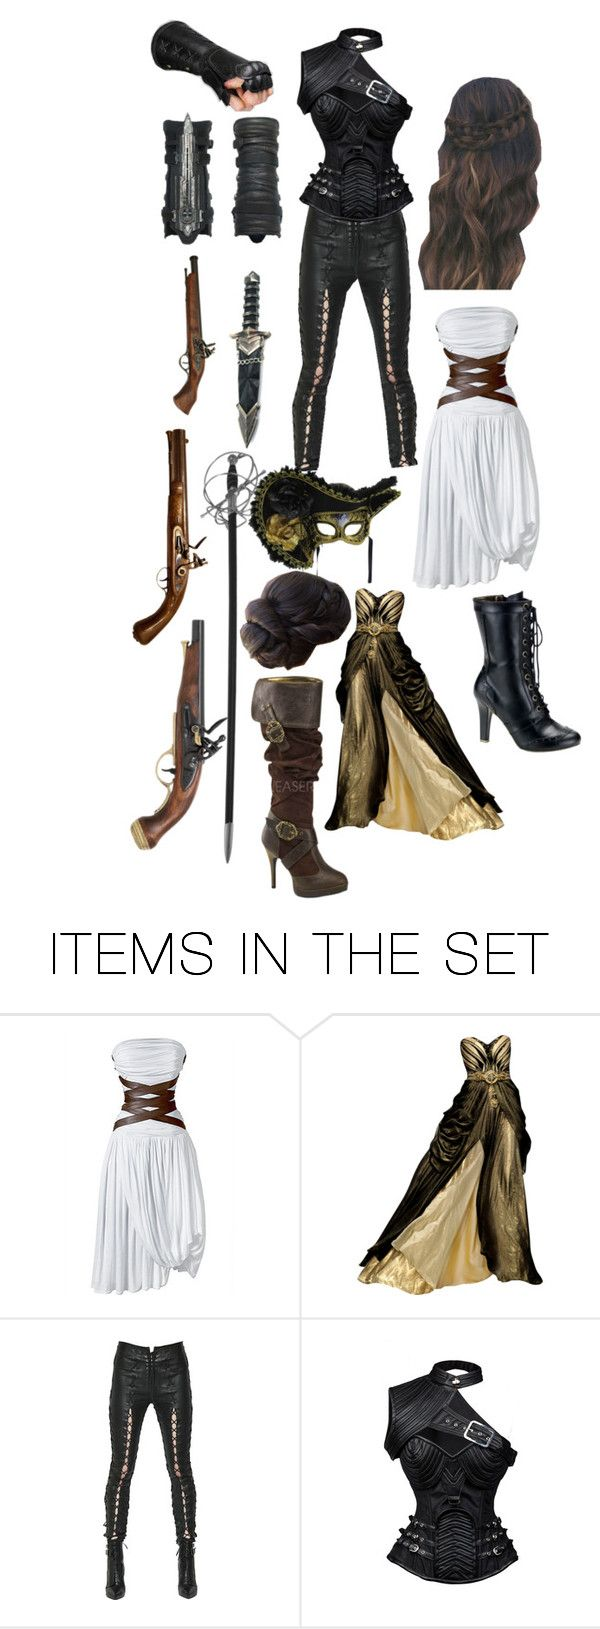 """female musketeer / assassin"" by brittrose421 ❤ liked on Polyvore featuring art"